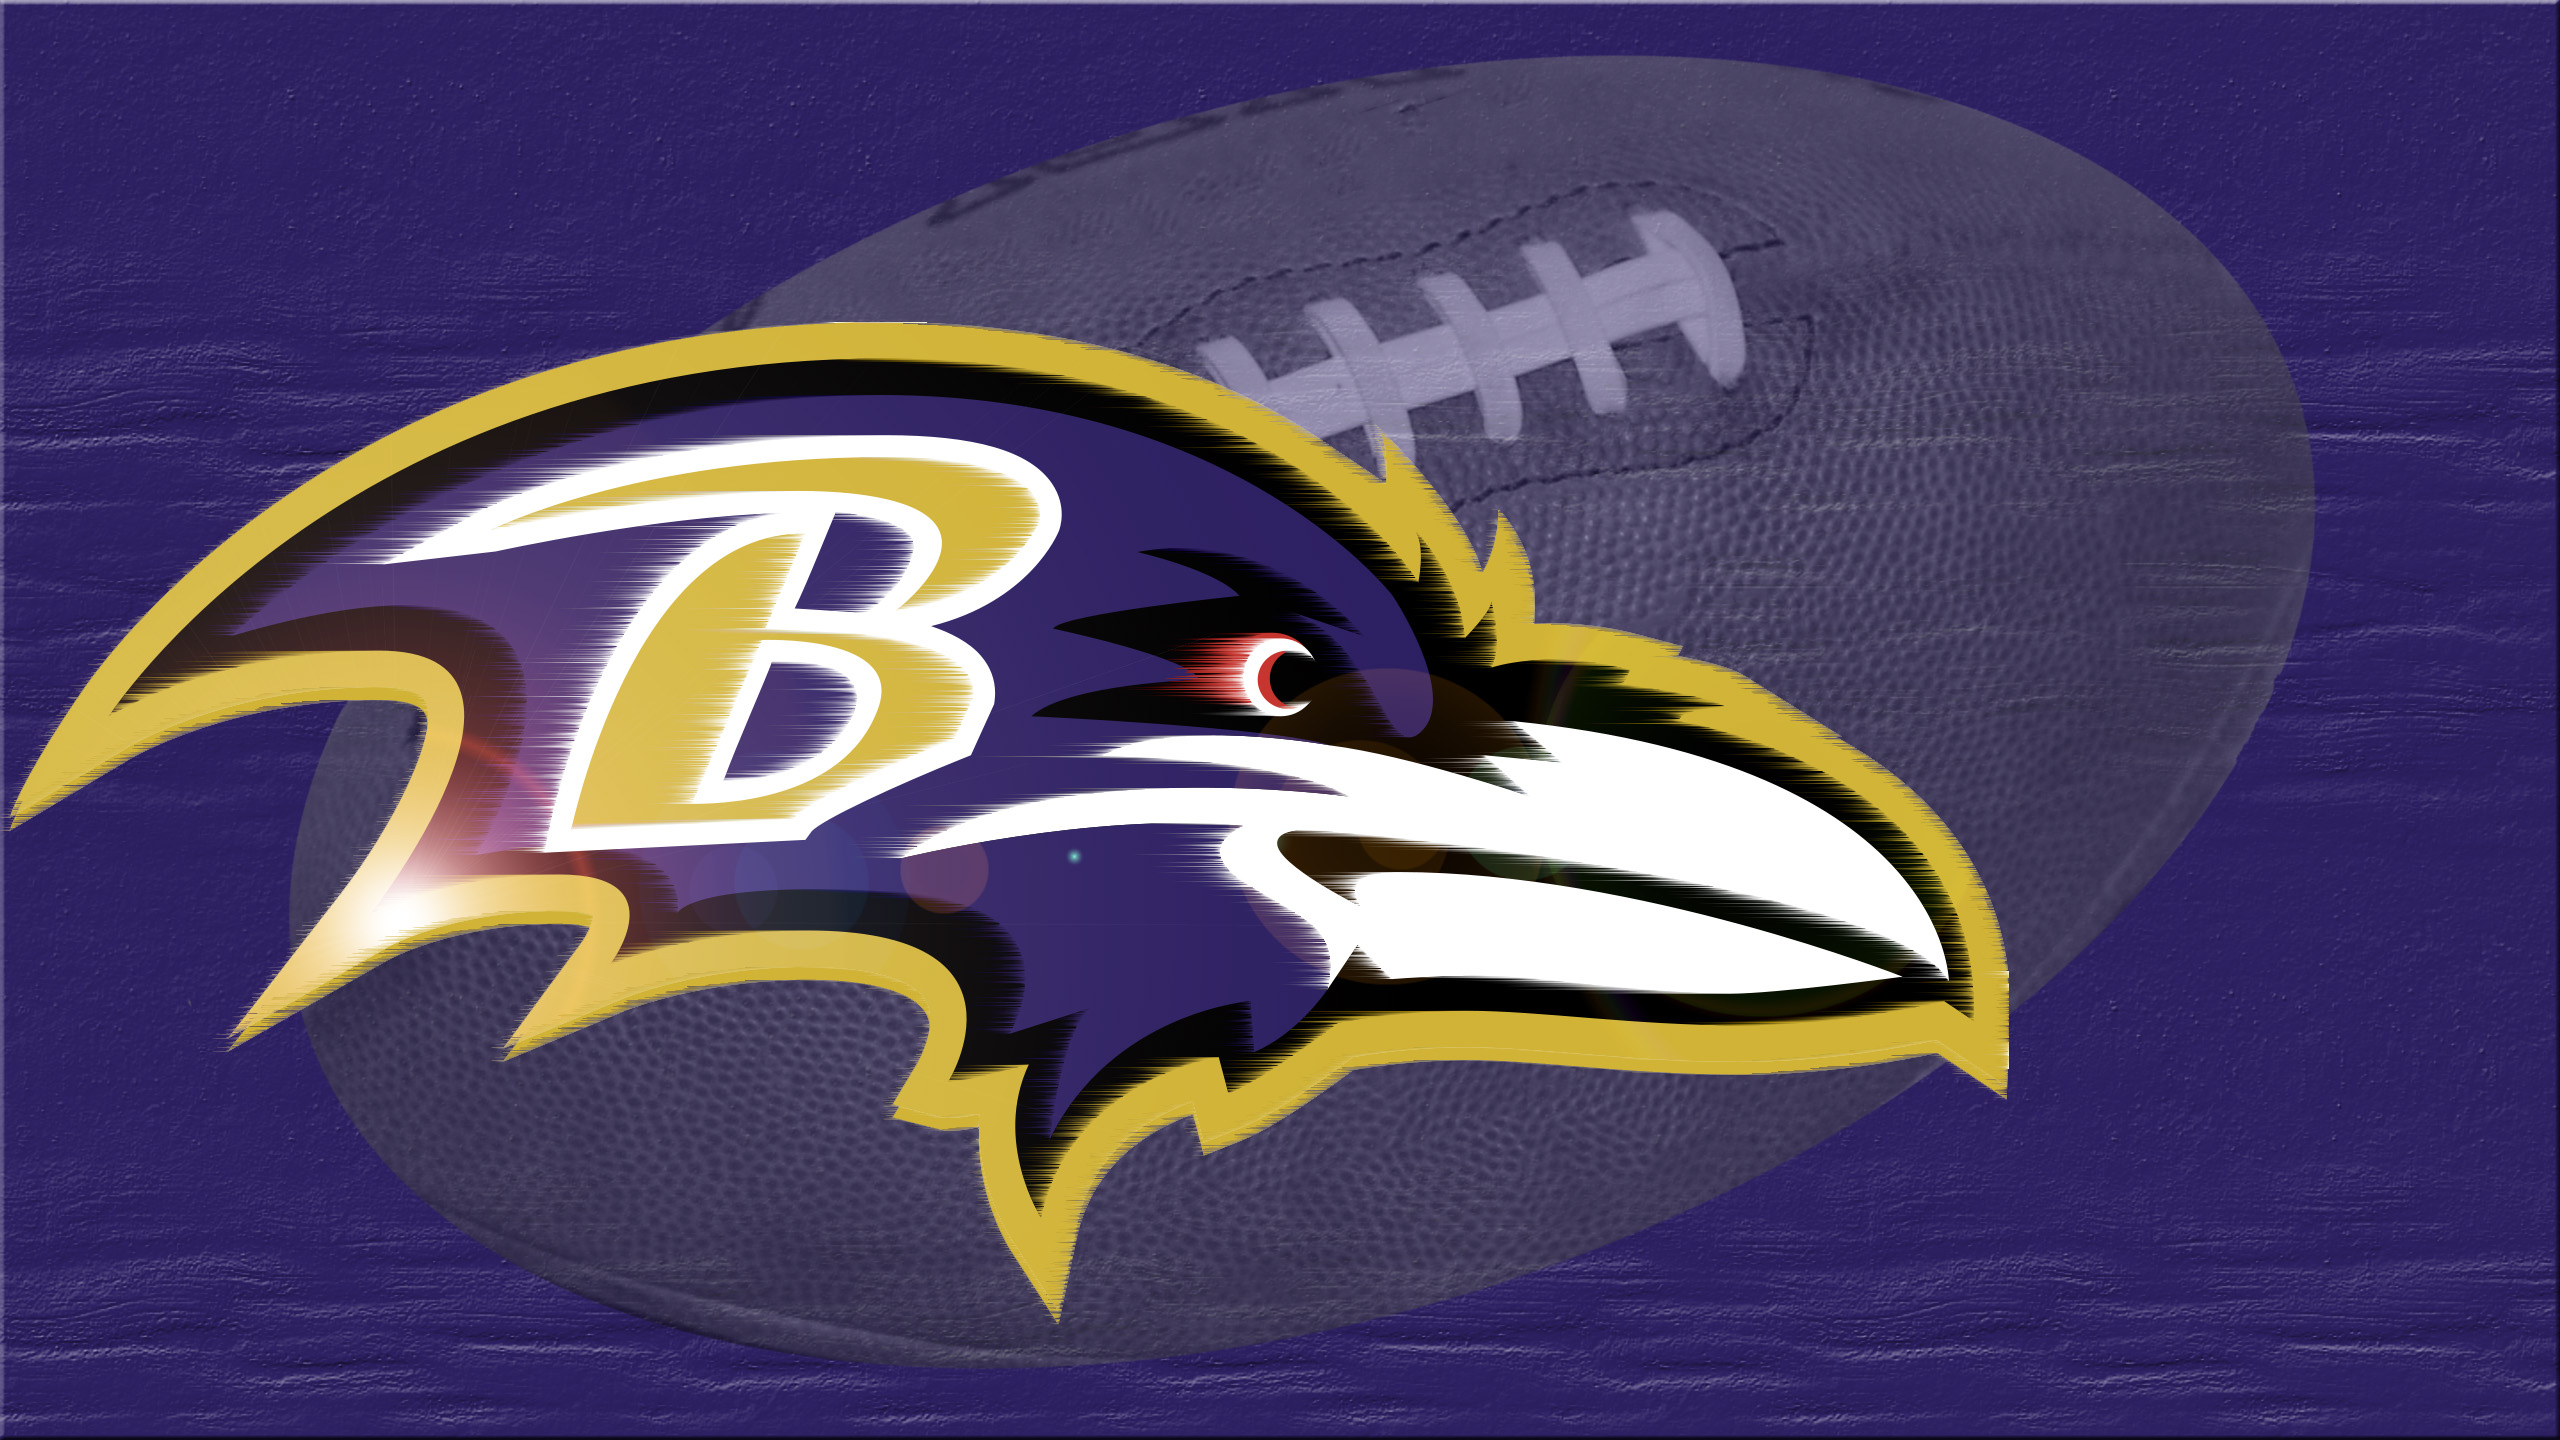 BALTIMORE RAVENS nfl football eg wallpaper 2560x1440 154664 2560x1440